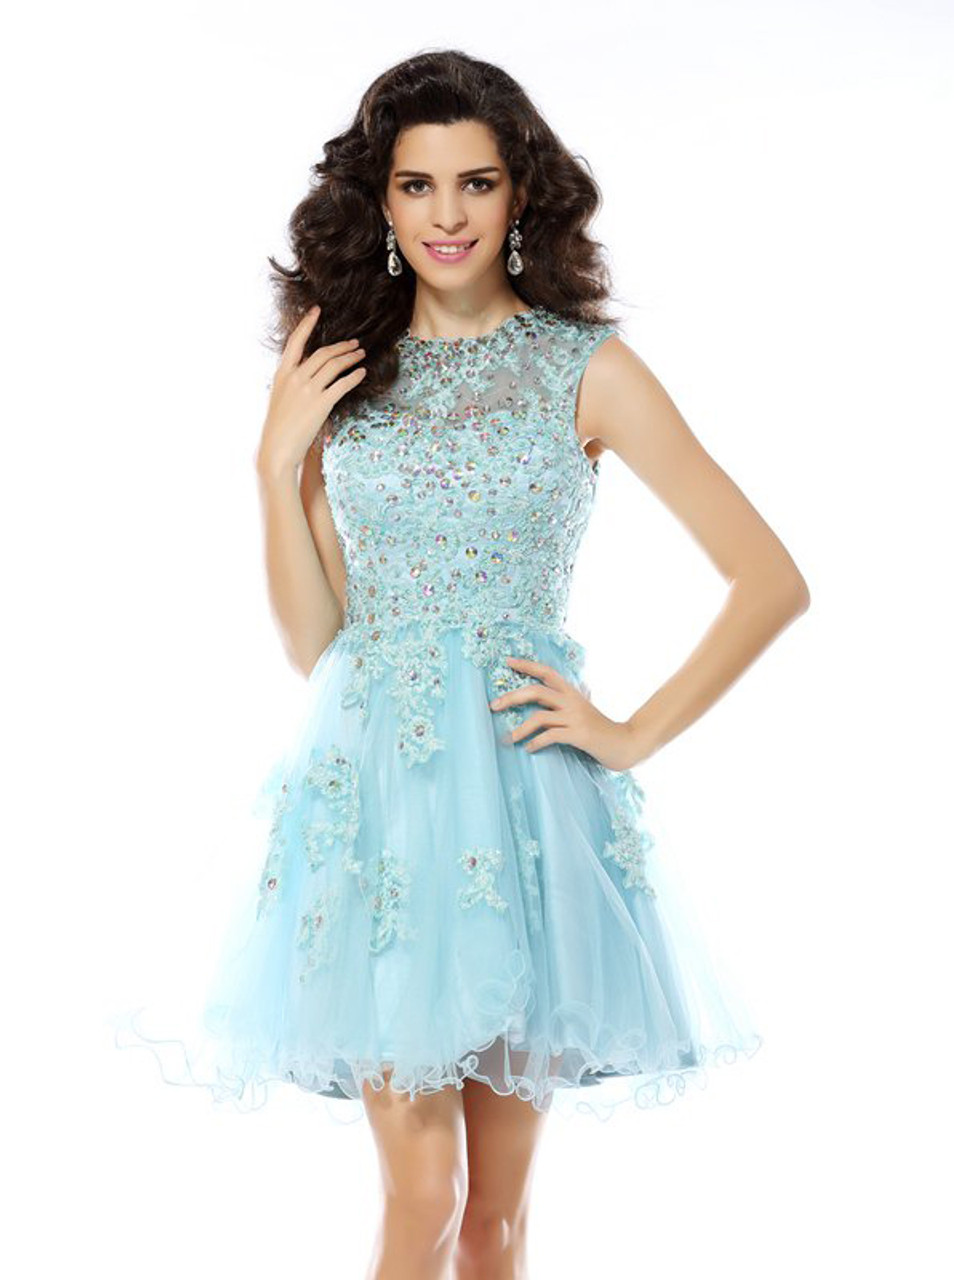 7ec7178b7 SkyBlue Homecoming Dresses,Cutout Short Prom Dress,11449 - Landress.co.uk